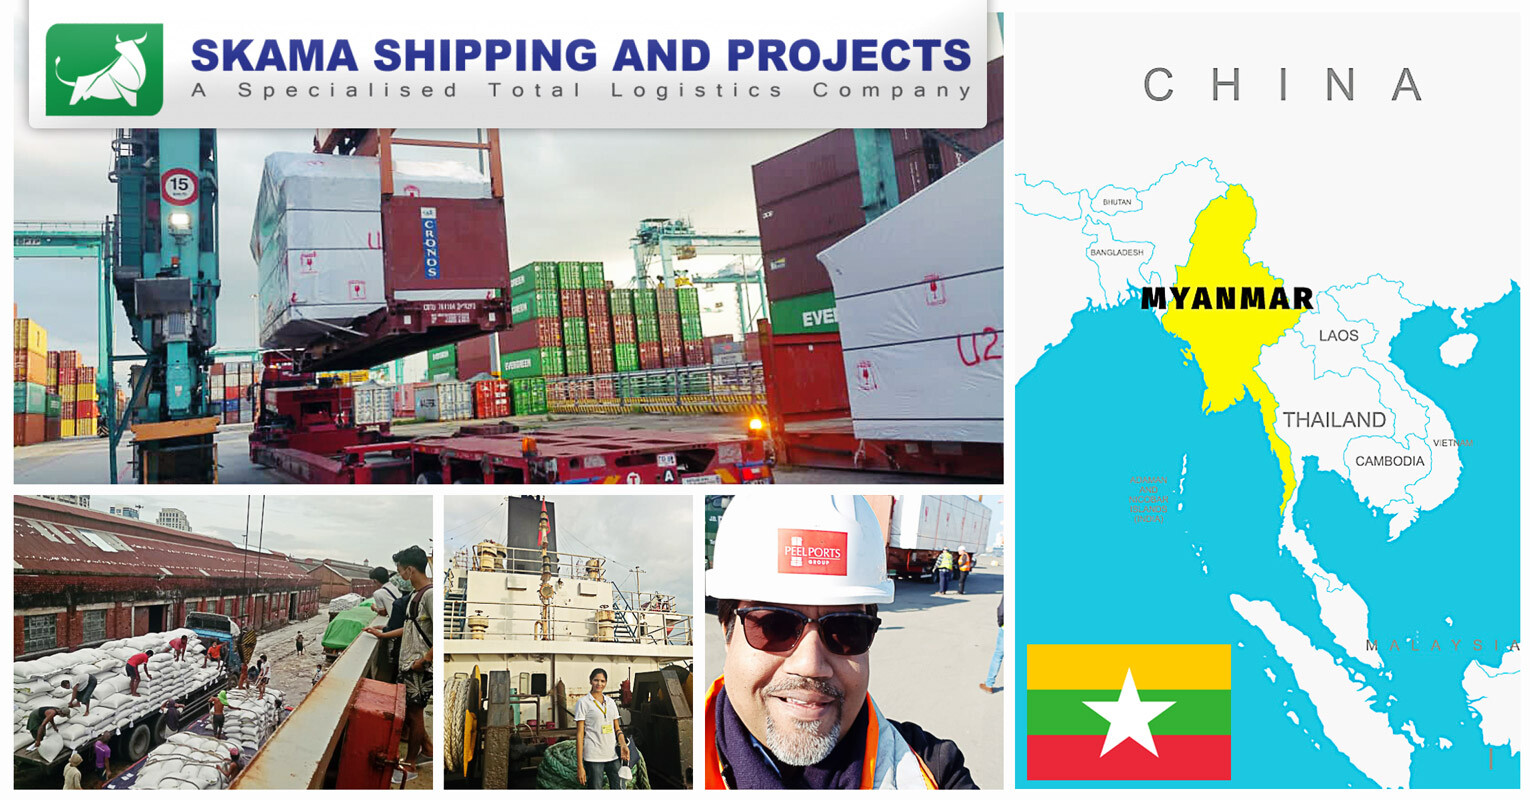 New member representing Myanmar – Skama Shipping and Projects